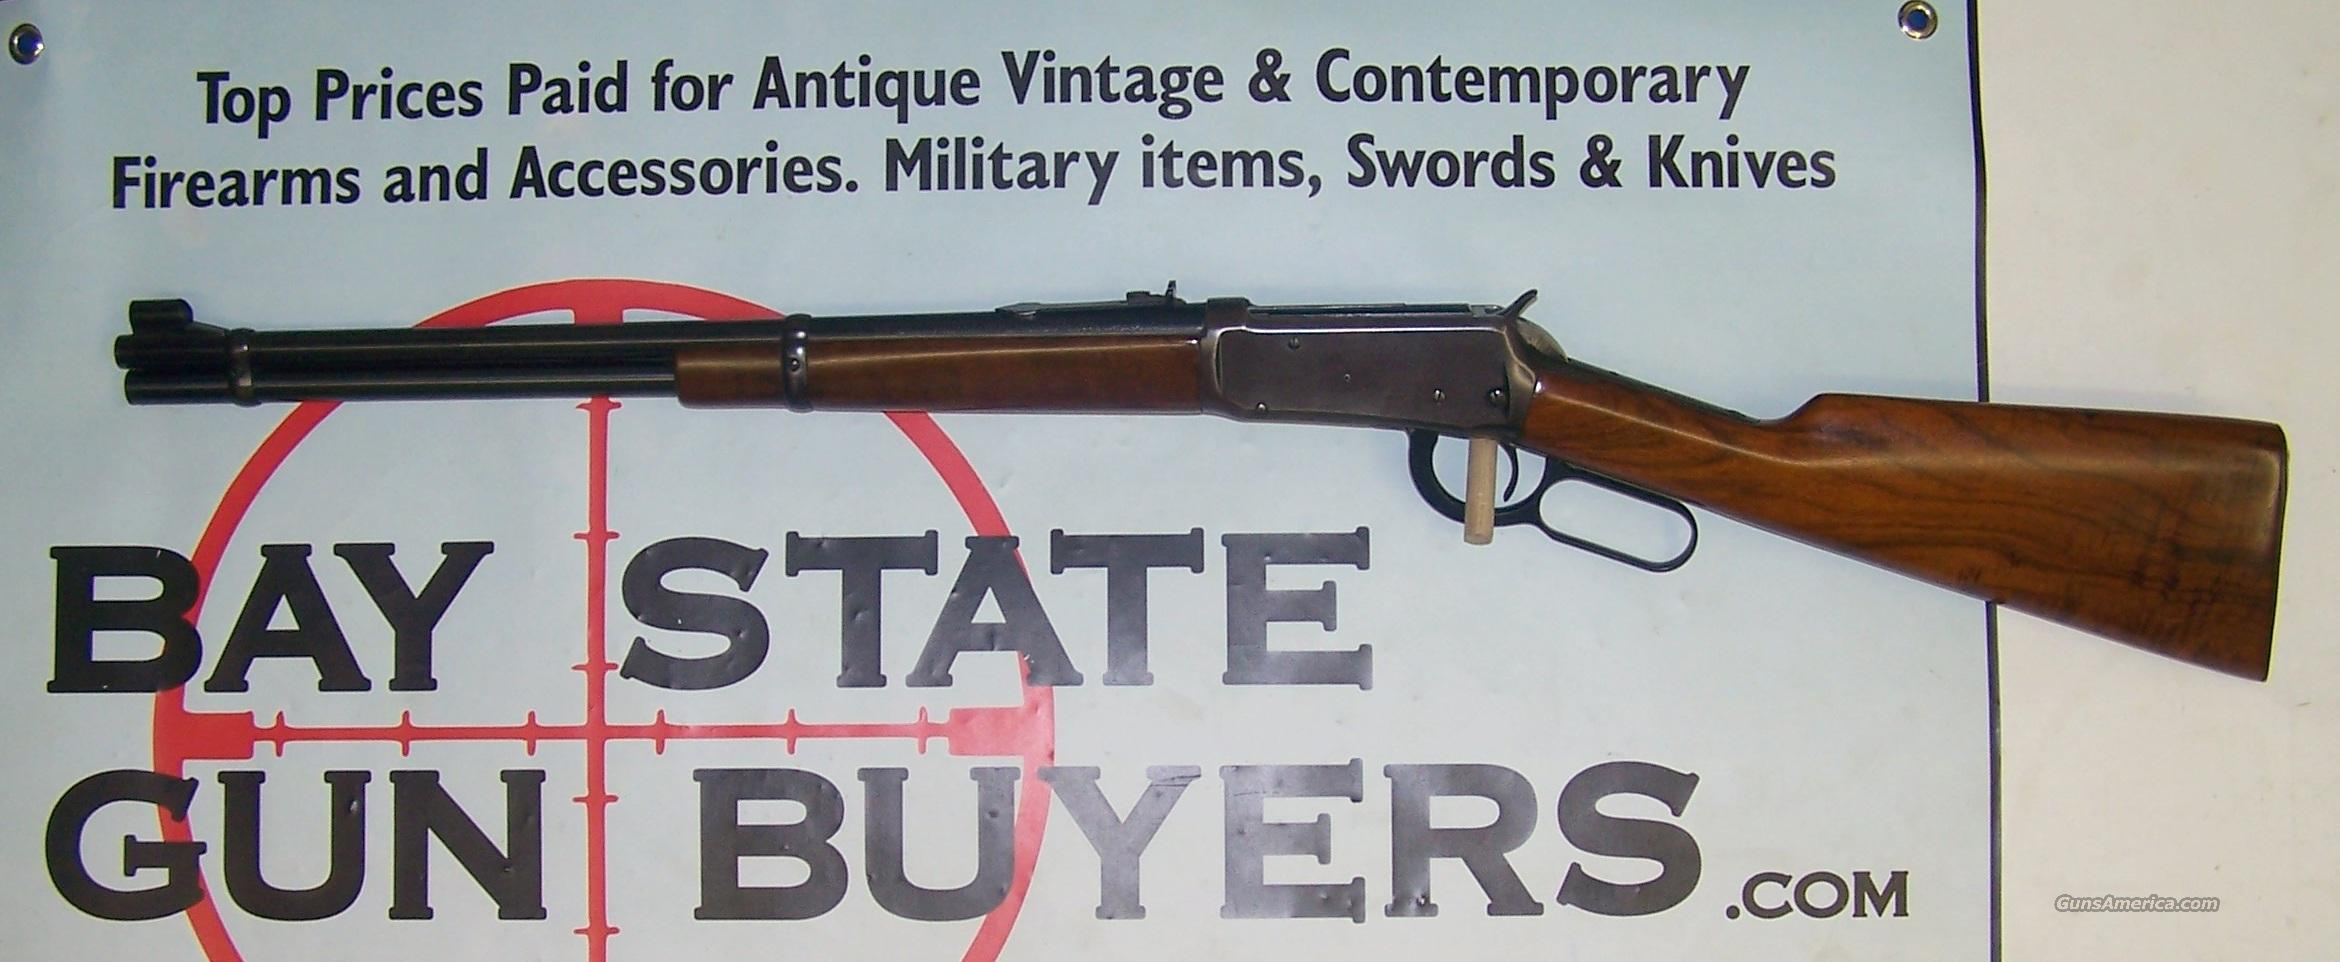 Winchester Model 94 Lever Action Rifle .32 W.S. - PRE 64 (1940's)  Guns > Rifles > Winchester Rifles - Modern Lever > Model 94 > Pre-64